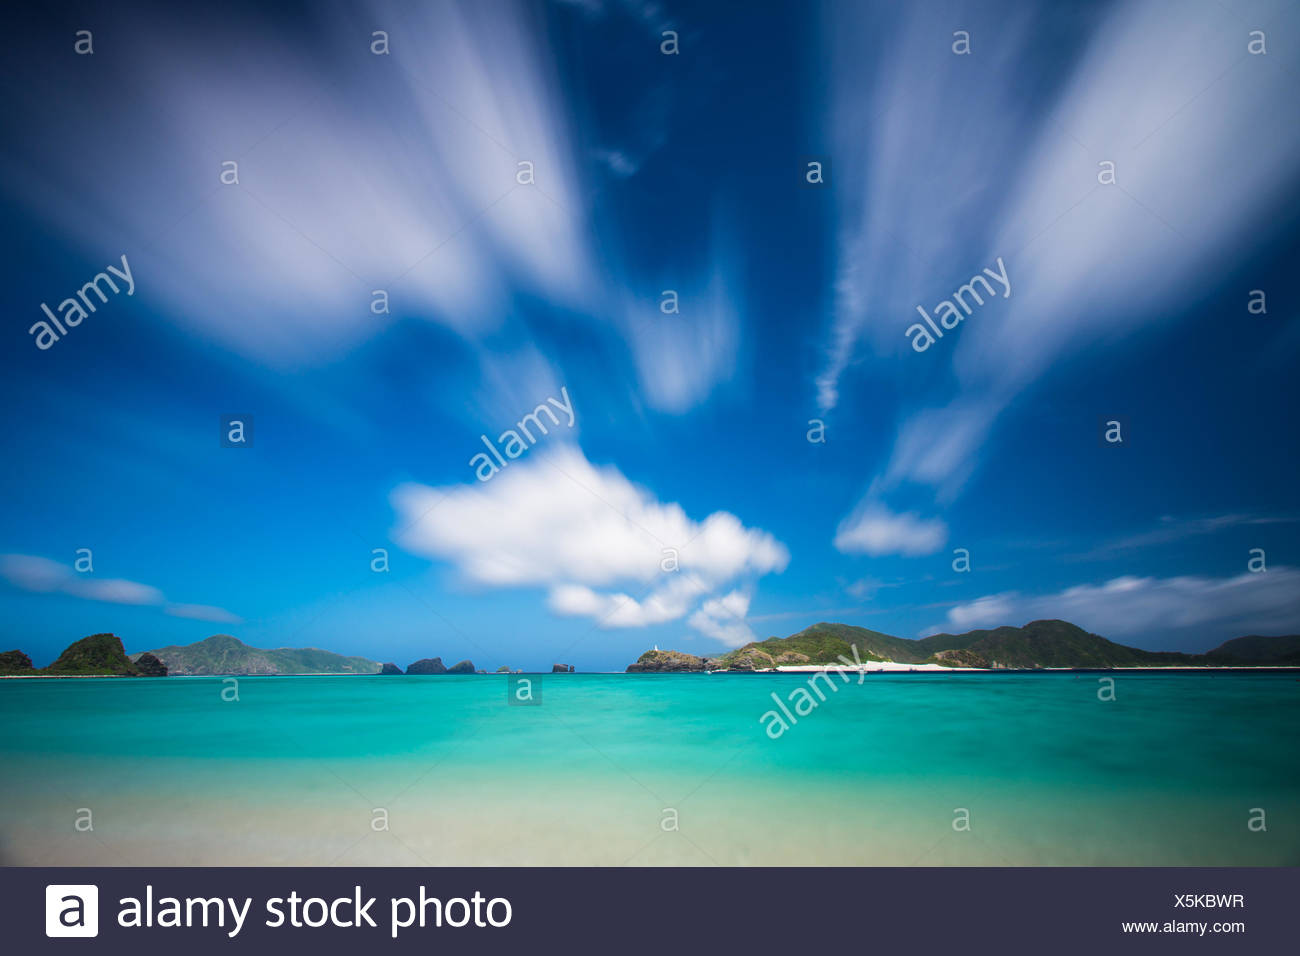 Tropical beach scene, Okinawa, Japan - Stock Image